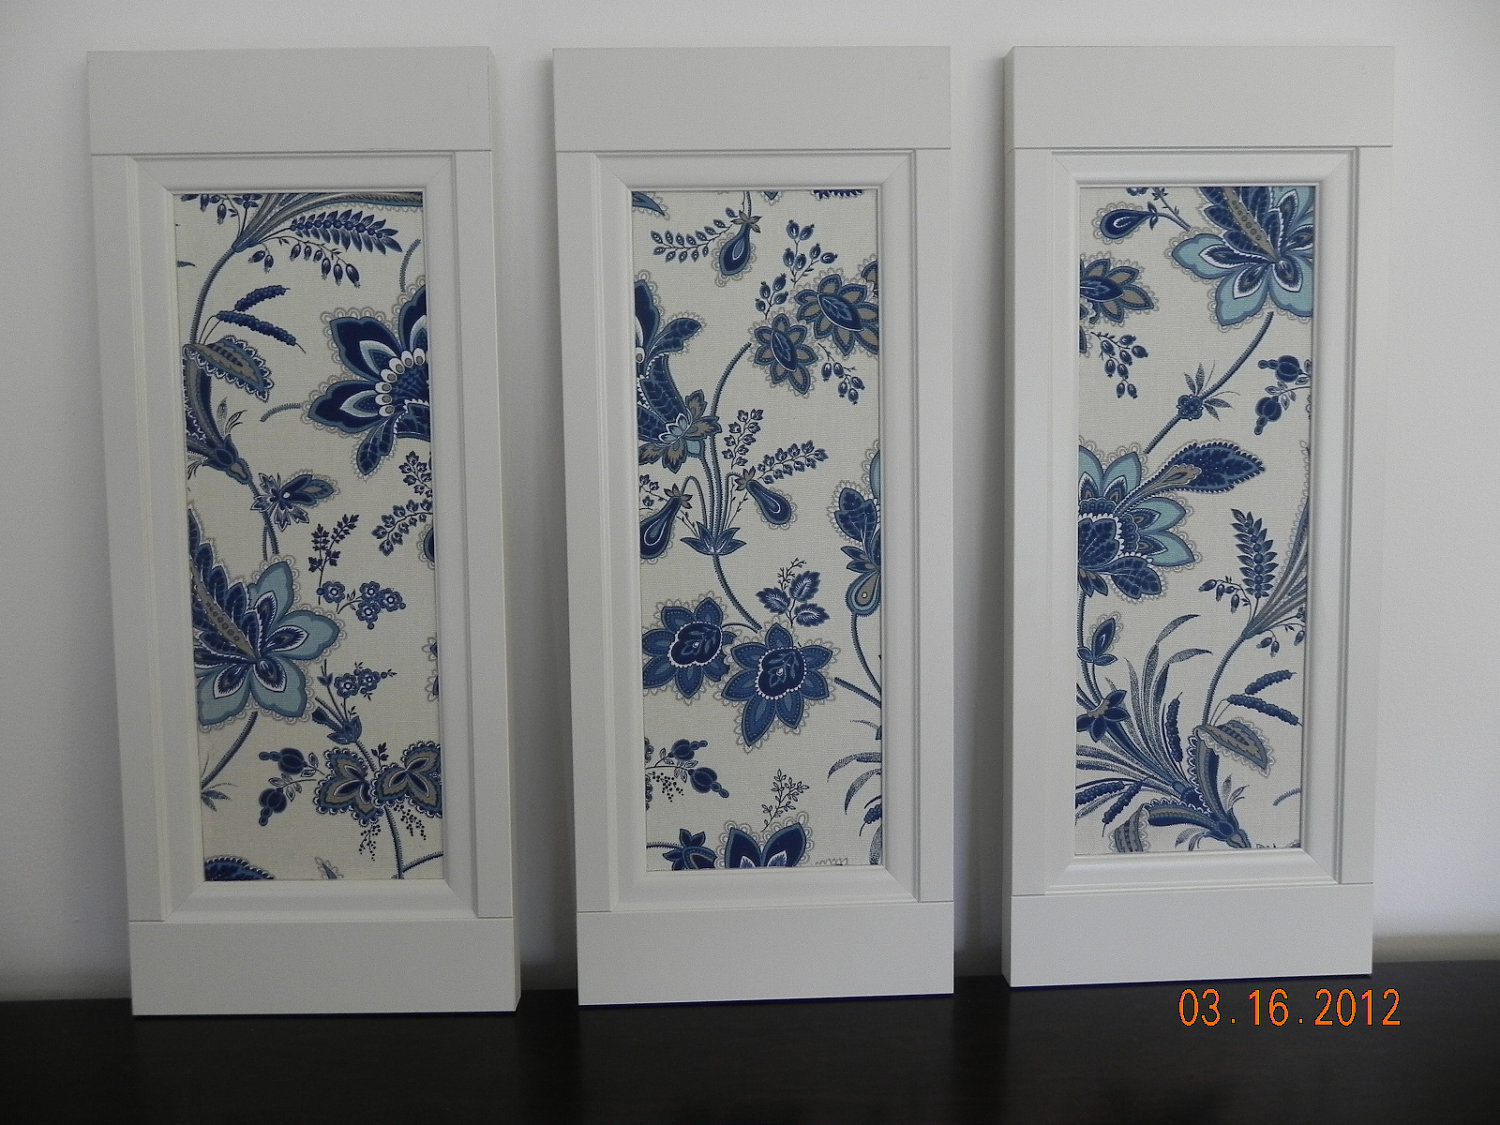 Wall Decoration Cloth : Items similar to handmade wall decor wooden frame fabric